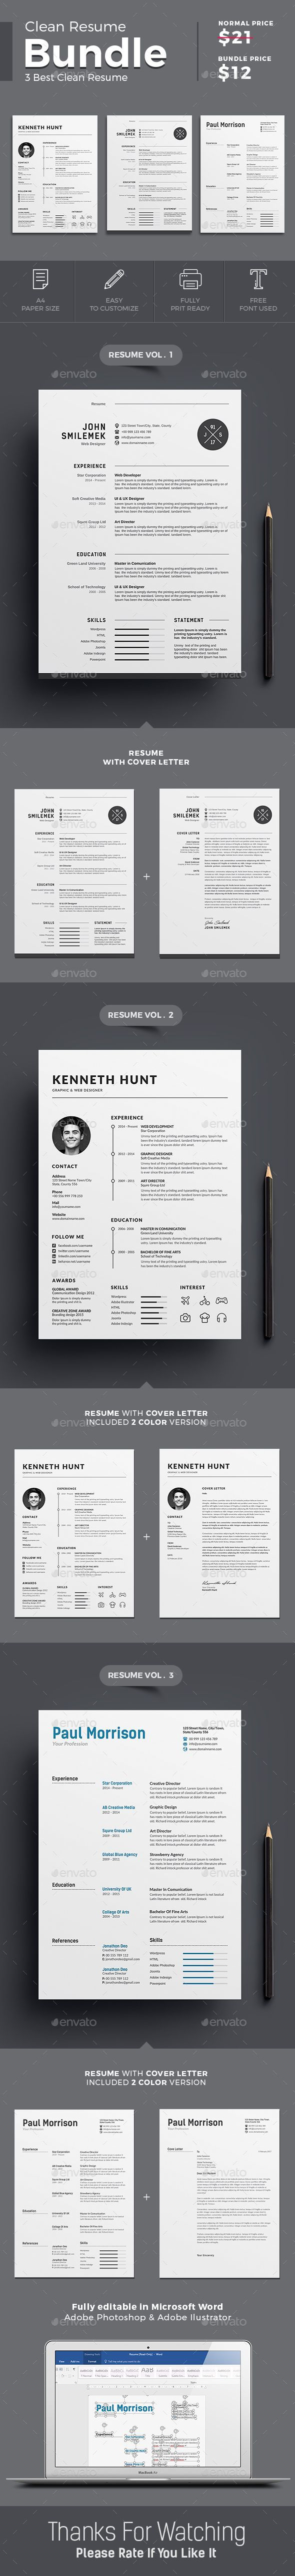 Criminal Justice Resume Objective Word The  Best Images About Resume And Cover Letter On Pinterest  High School Student Resume Templates No Work Experience with Is My Perfect Resume Free Pdf Simple White Clean Resume Template Design  Resumes Stationery Sample Pharmacy Technician Resume Pdf